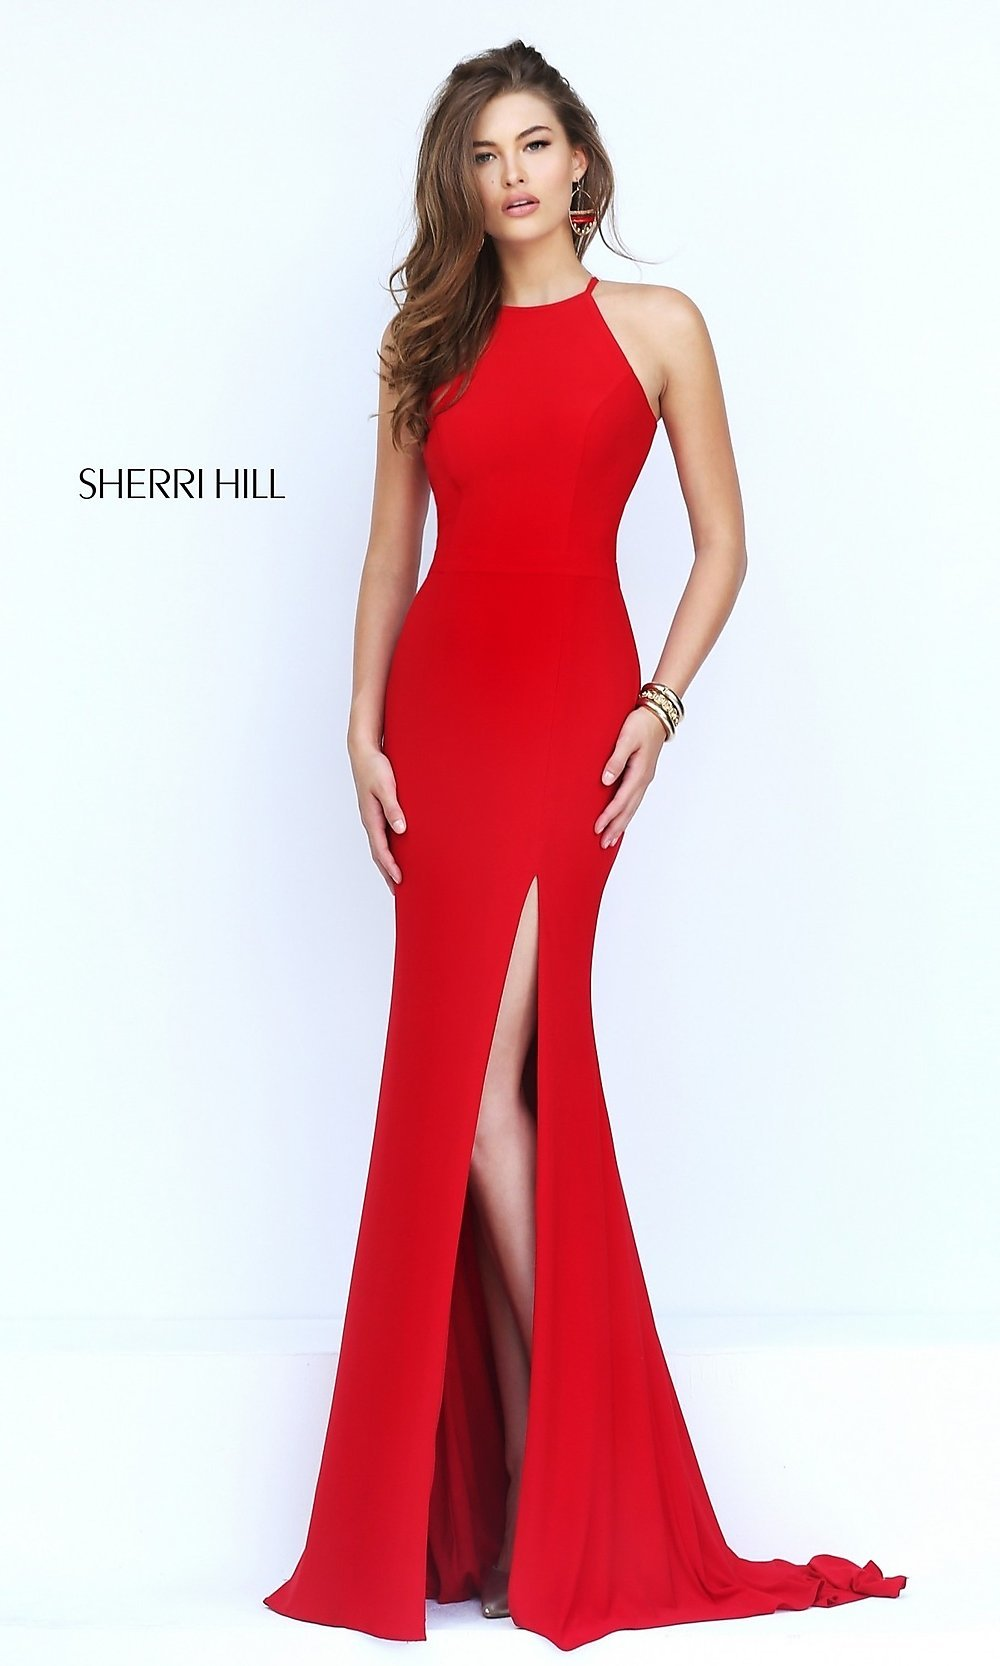 Sherri Hill Red Dress